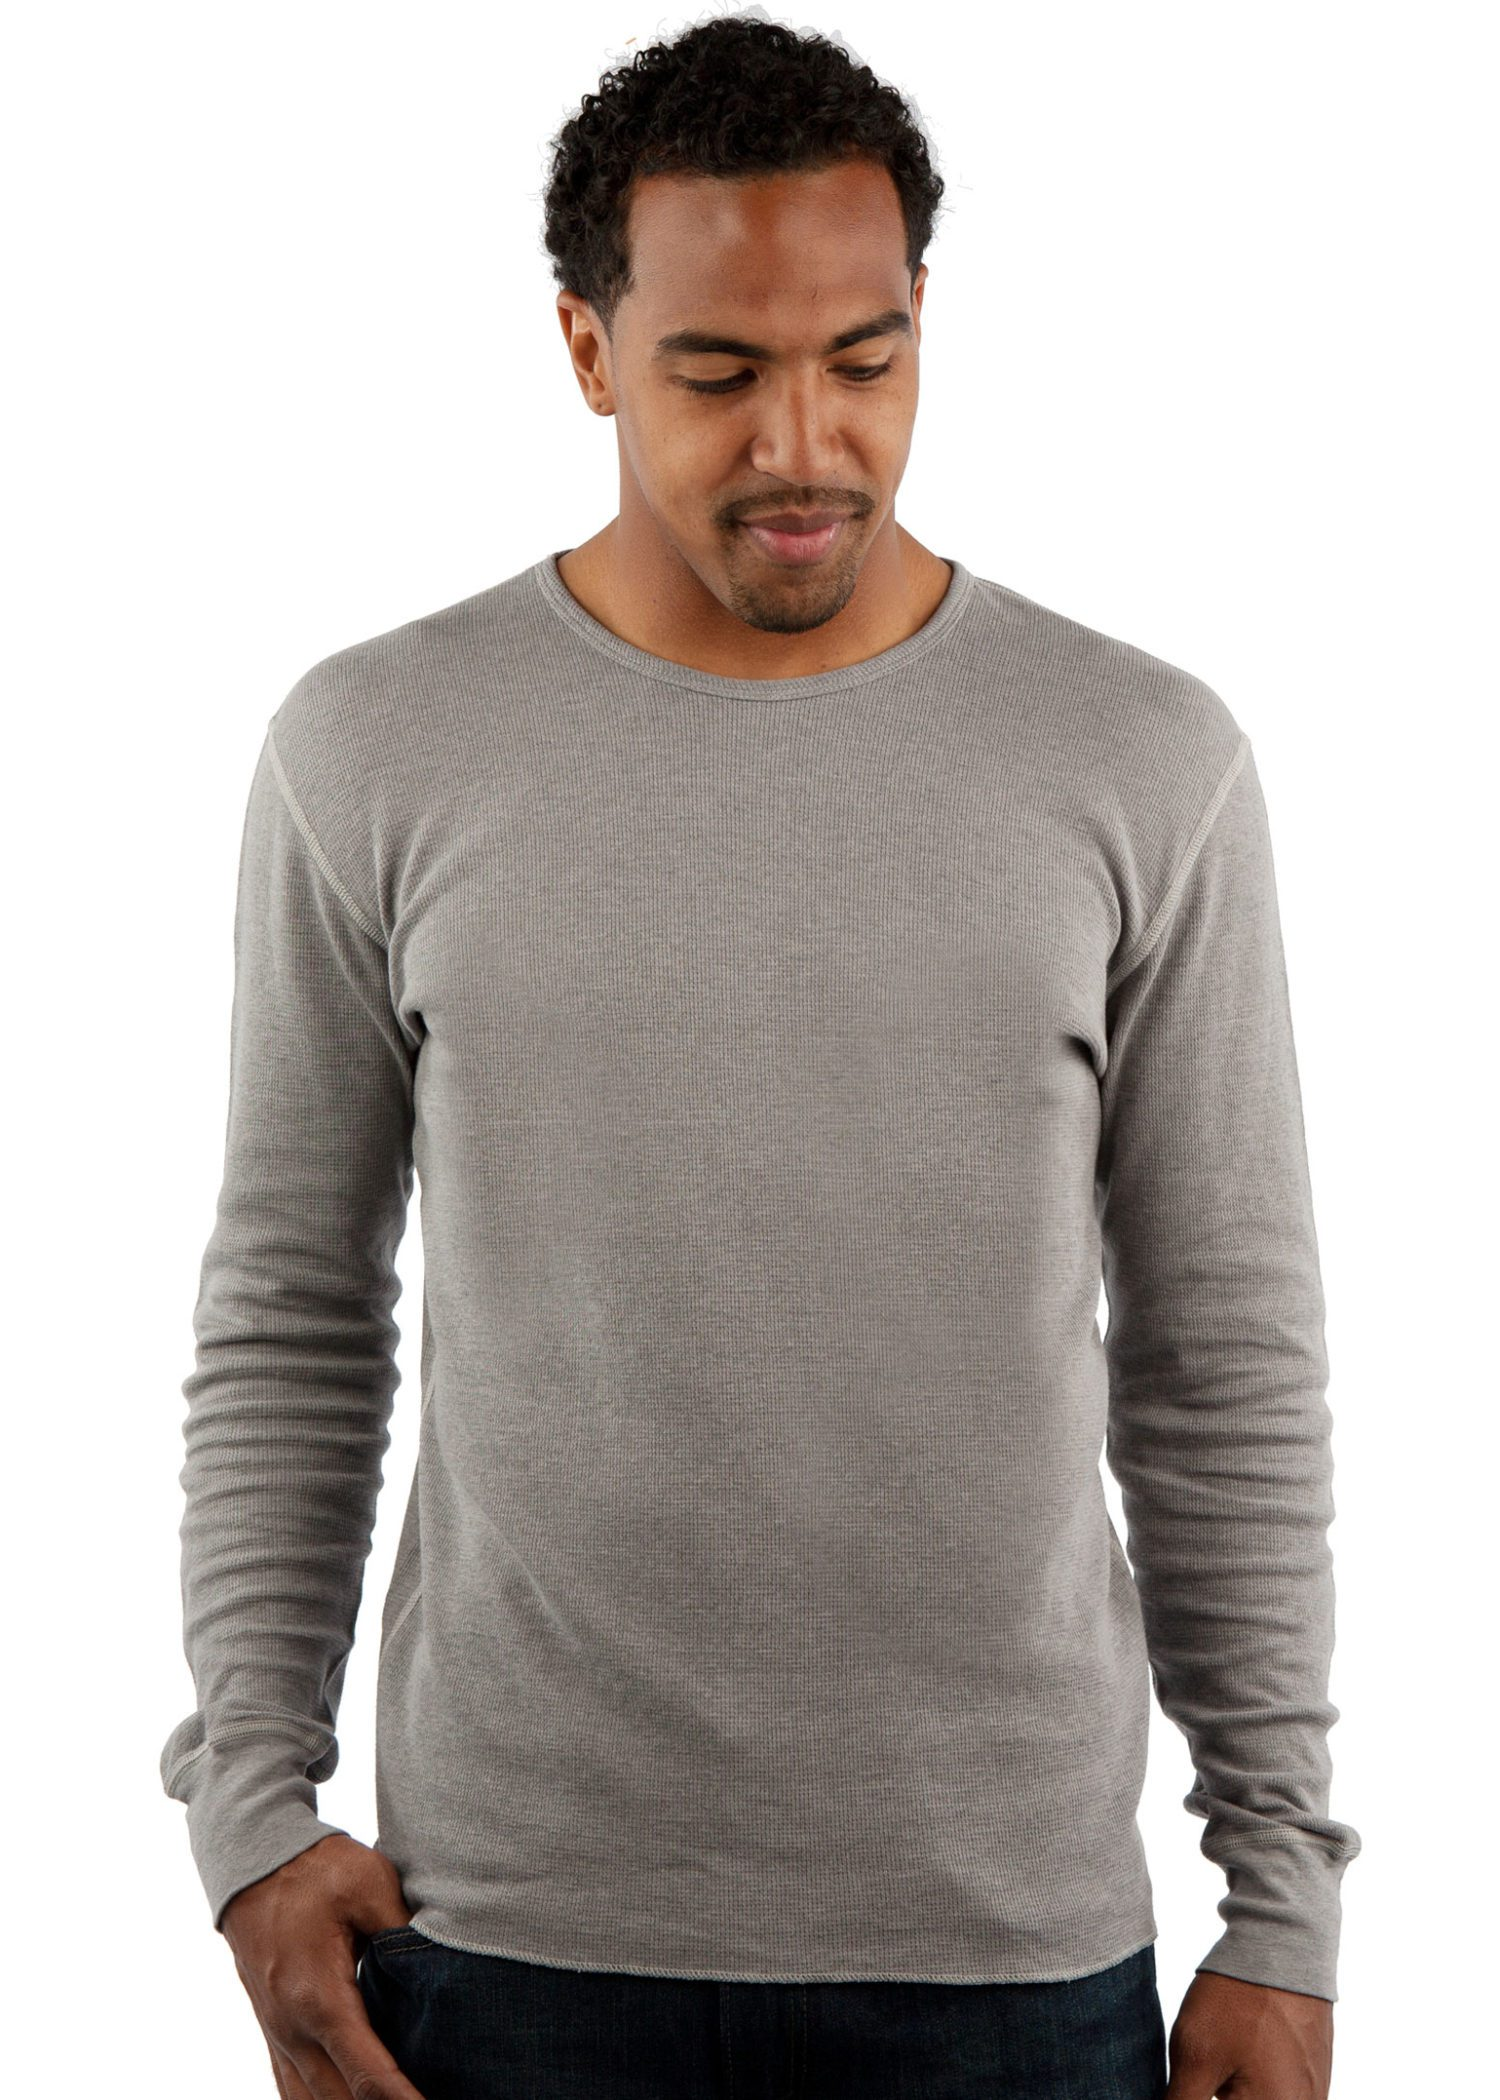 Vintage Long Sleeve Thermal T-Shirt Front View